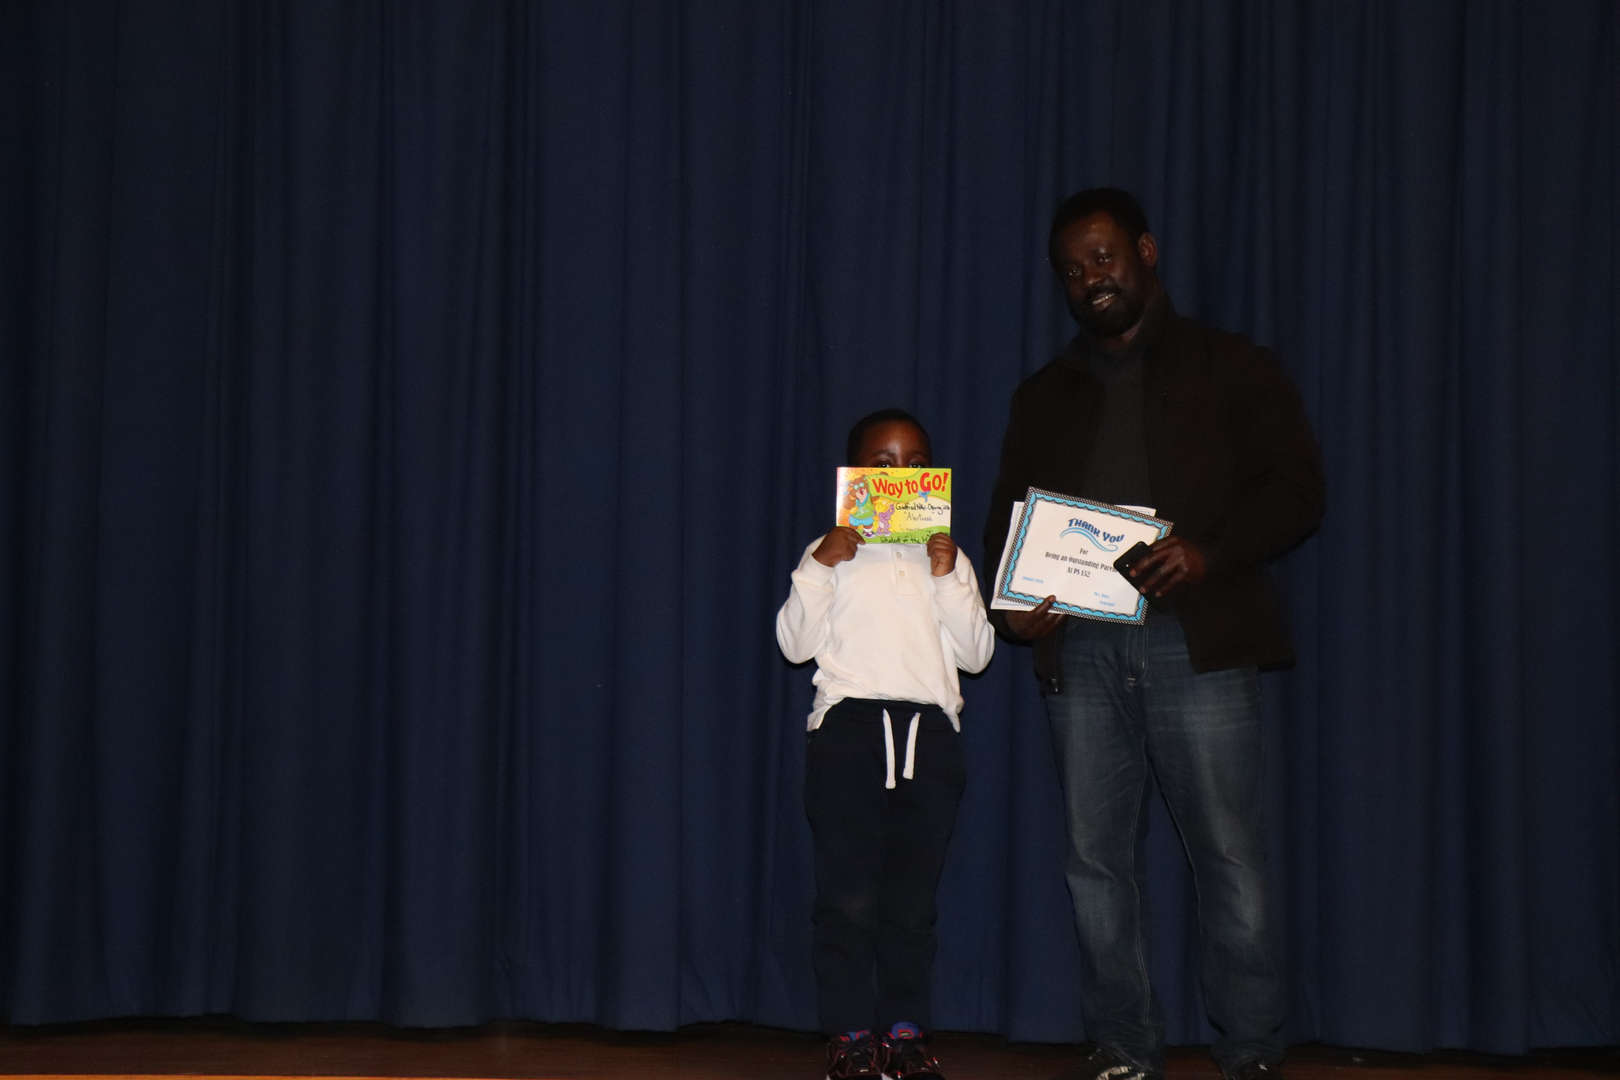 Second Grade Parent with his child who is student of the month.